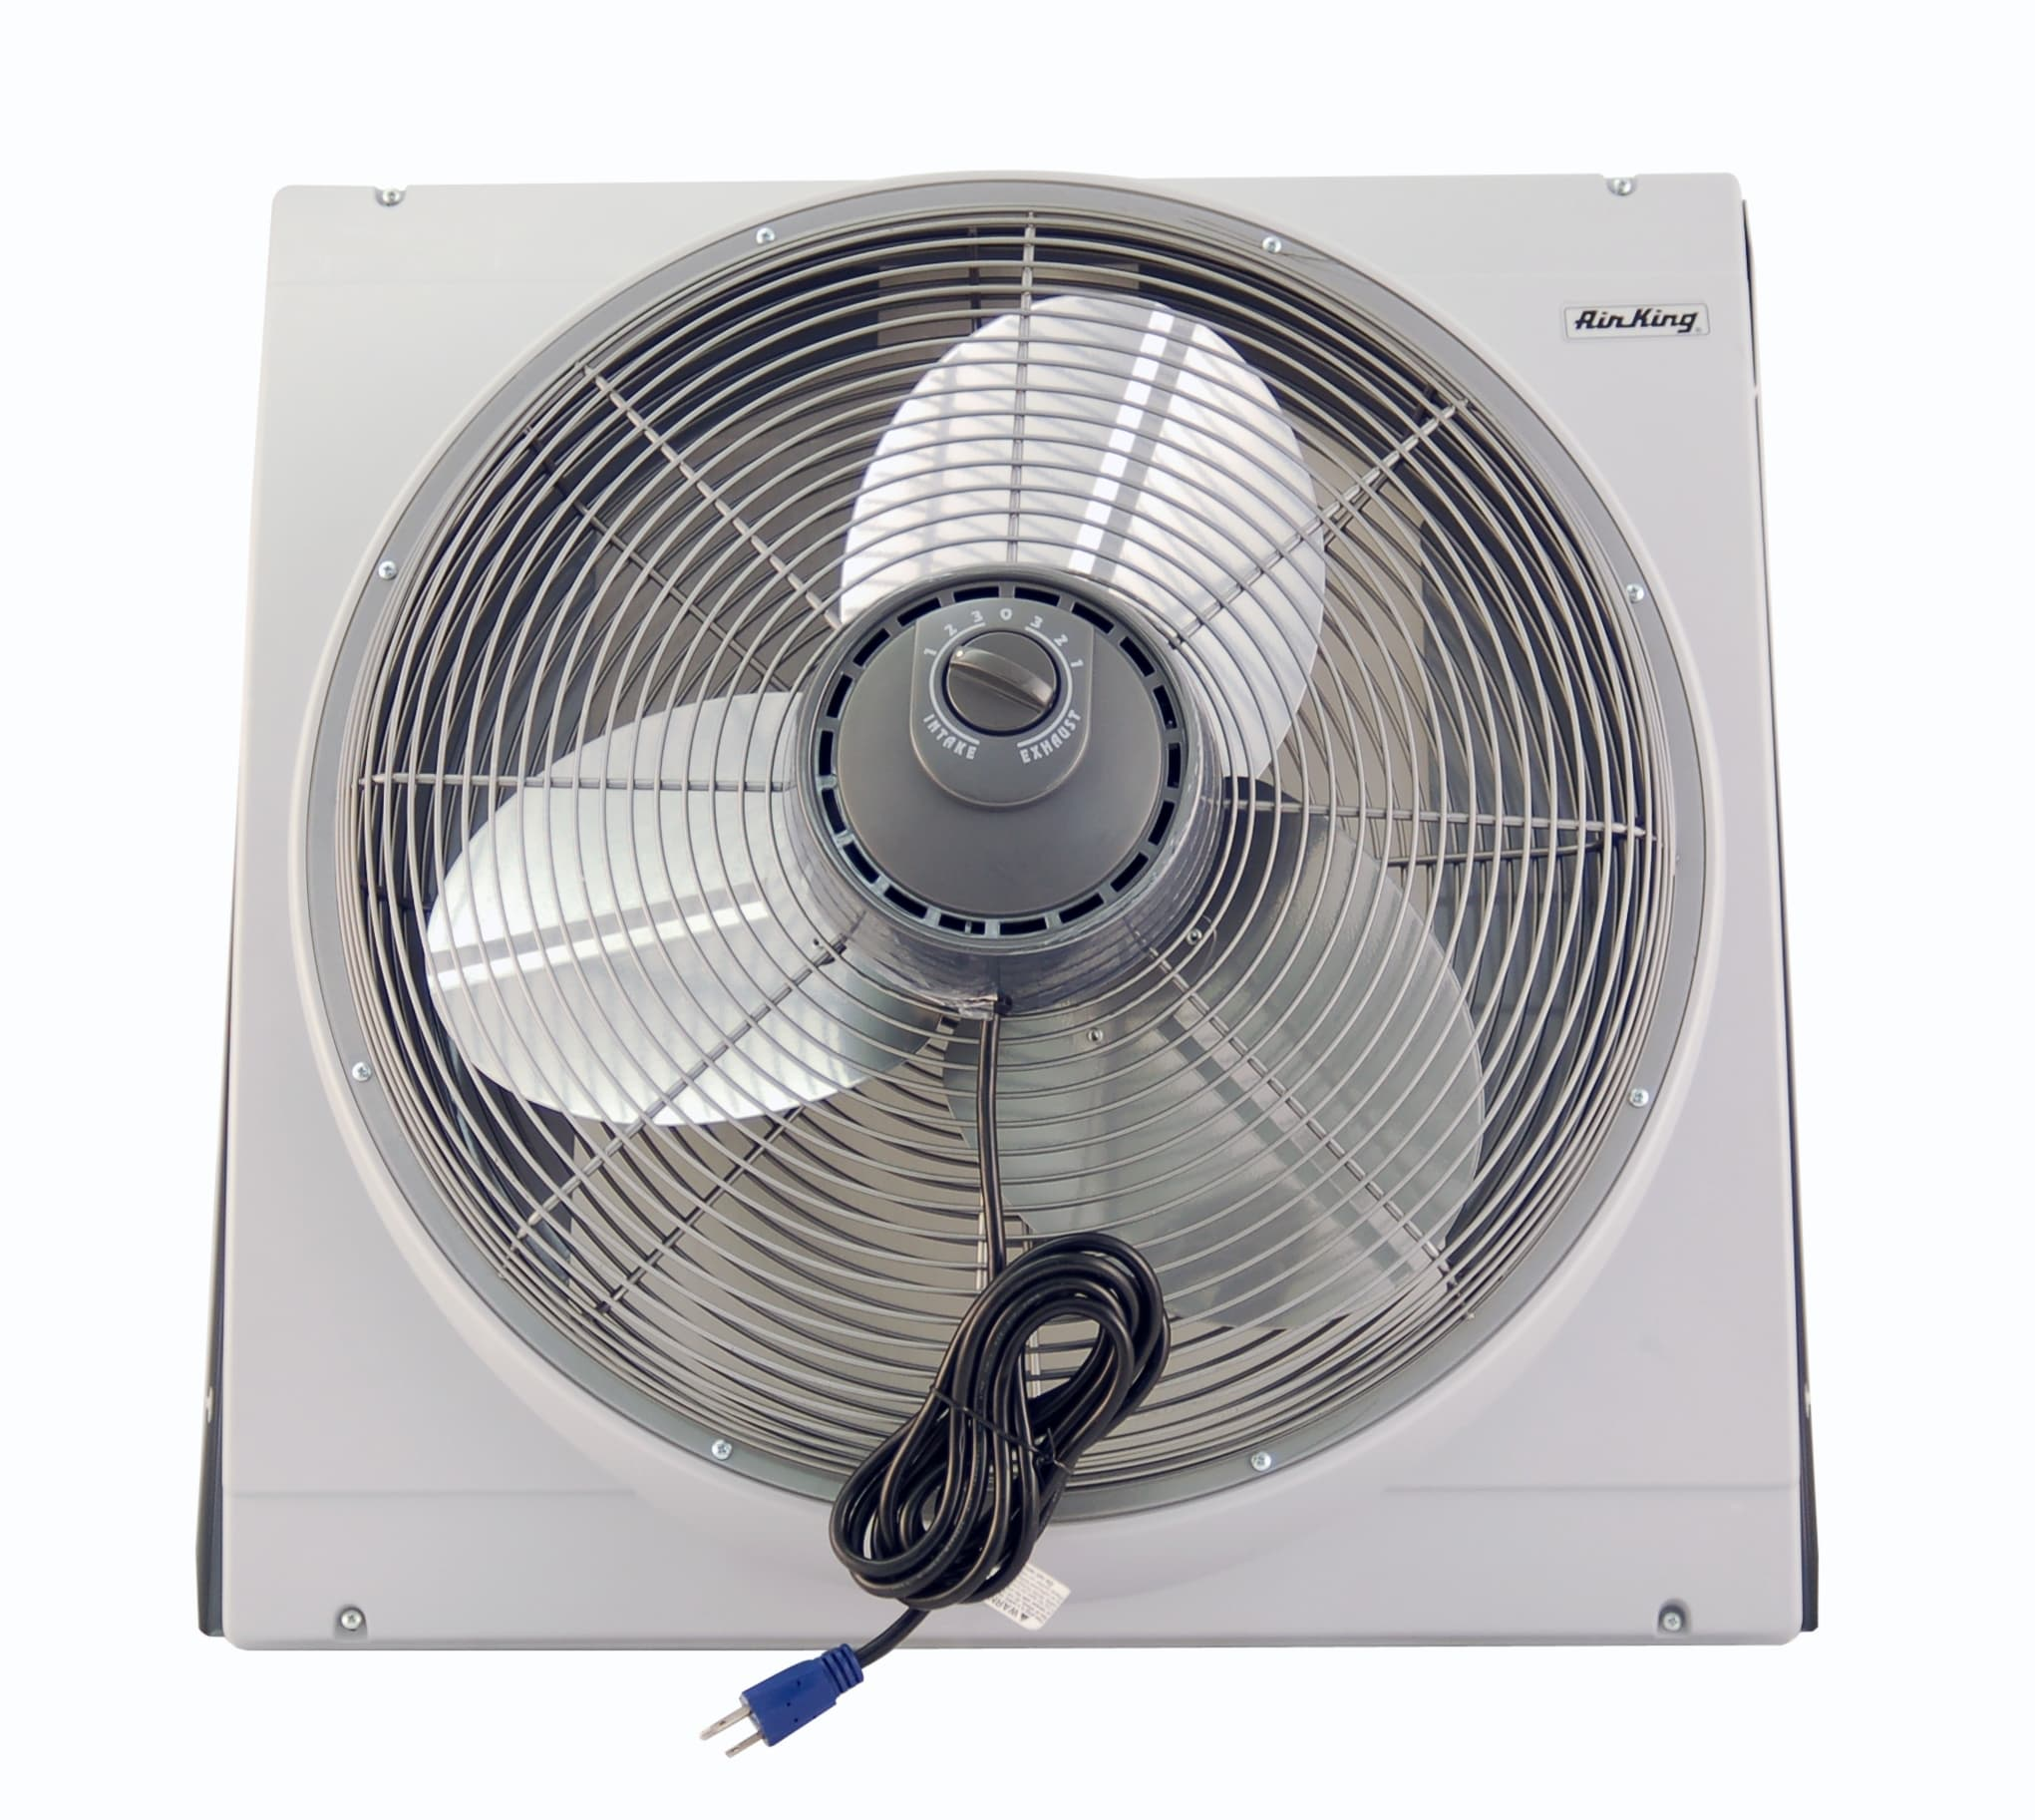 Air King 9166F NA 20 Inch 3560 CFM Whole House Window Mounted Fan with  Storm Guard Housing from the Window Fans Collection   VentingDirect com. Air King 9166F NA 20 Inch 3560 CFM Whole House Window Mounted Fan